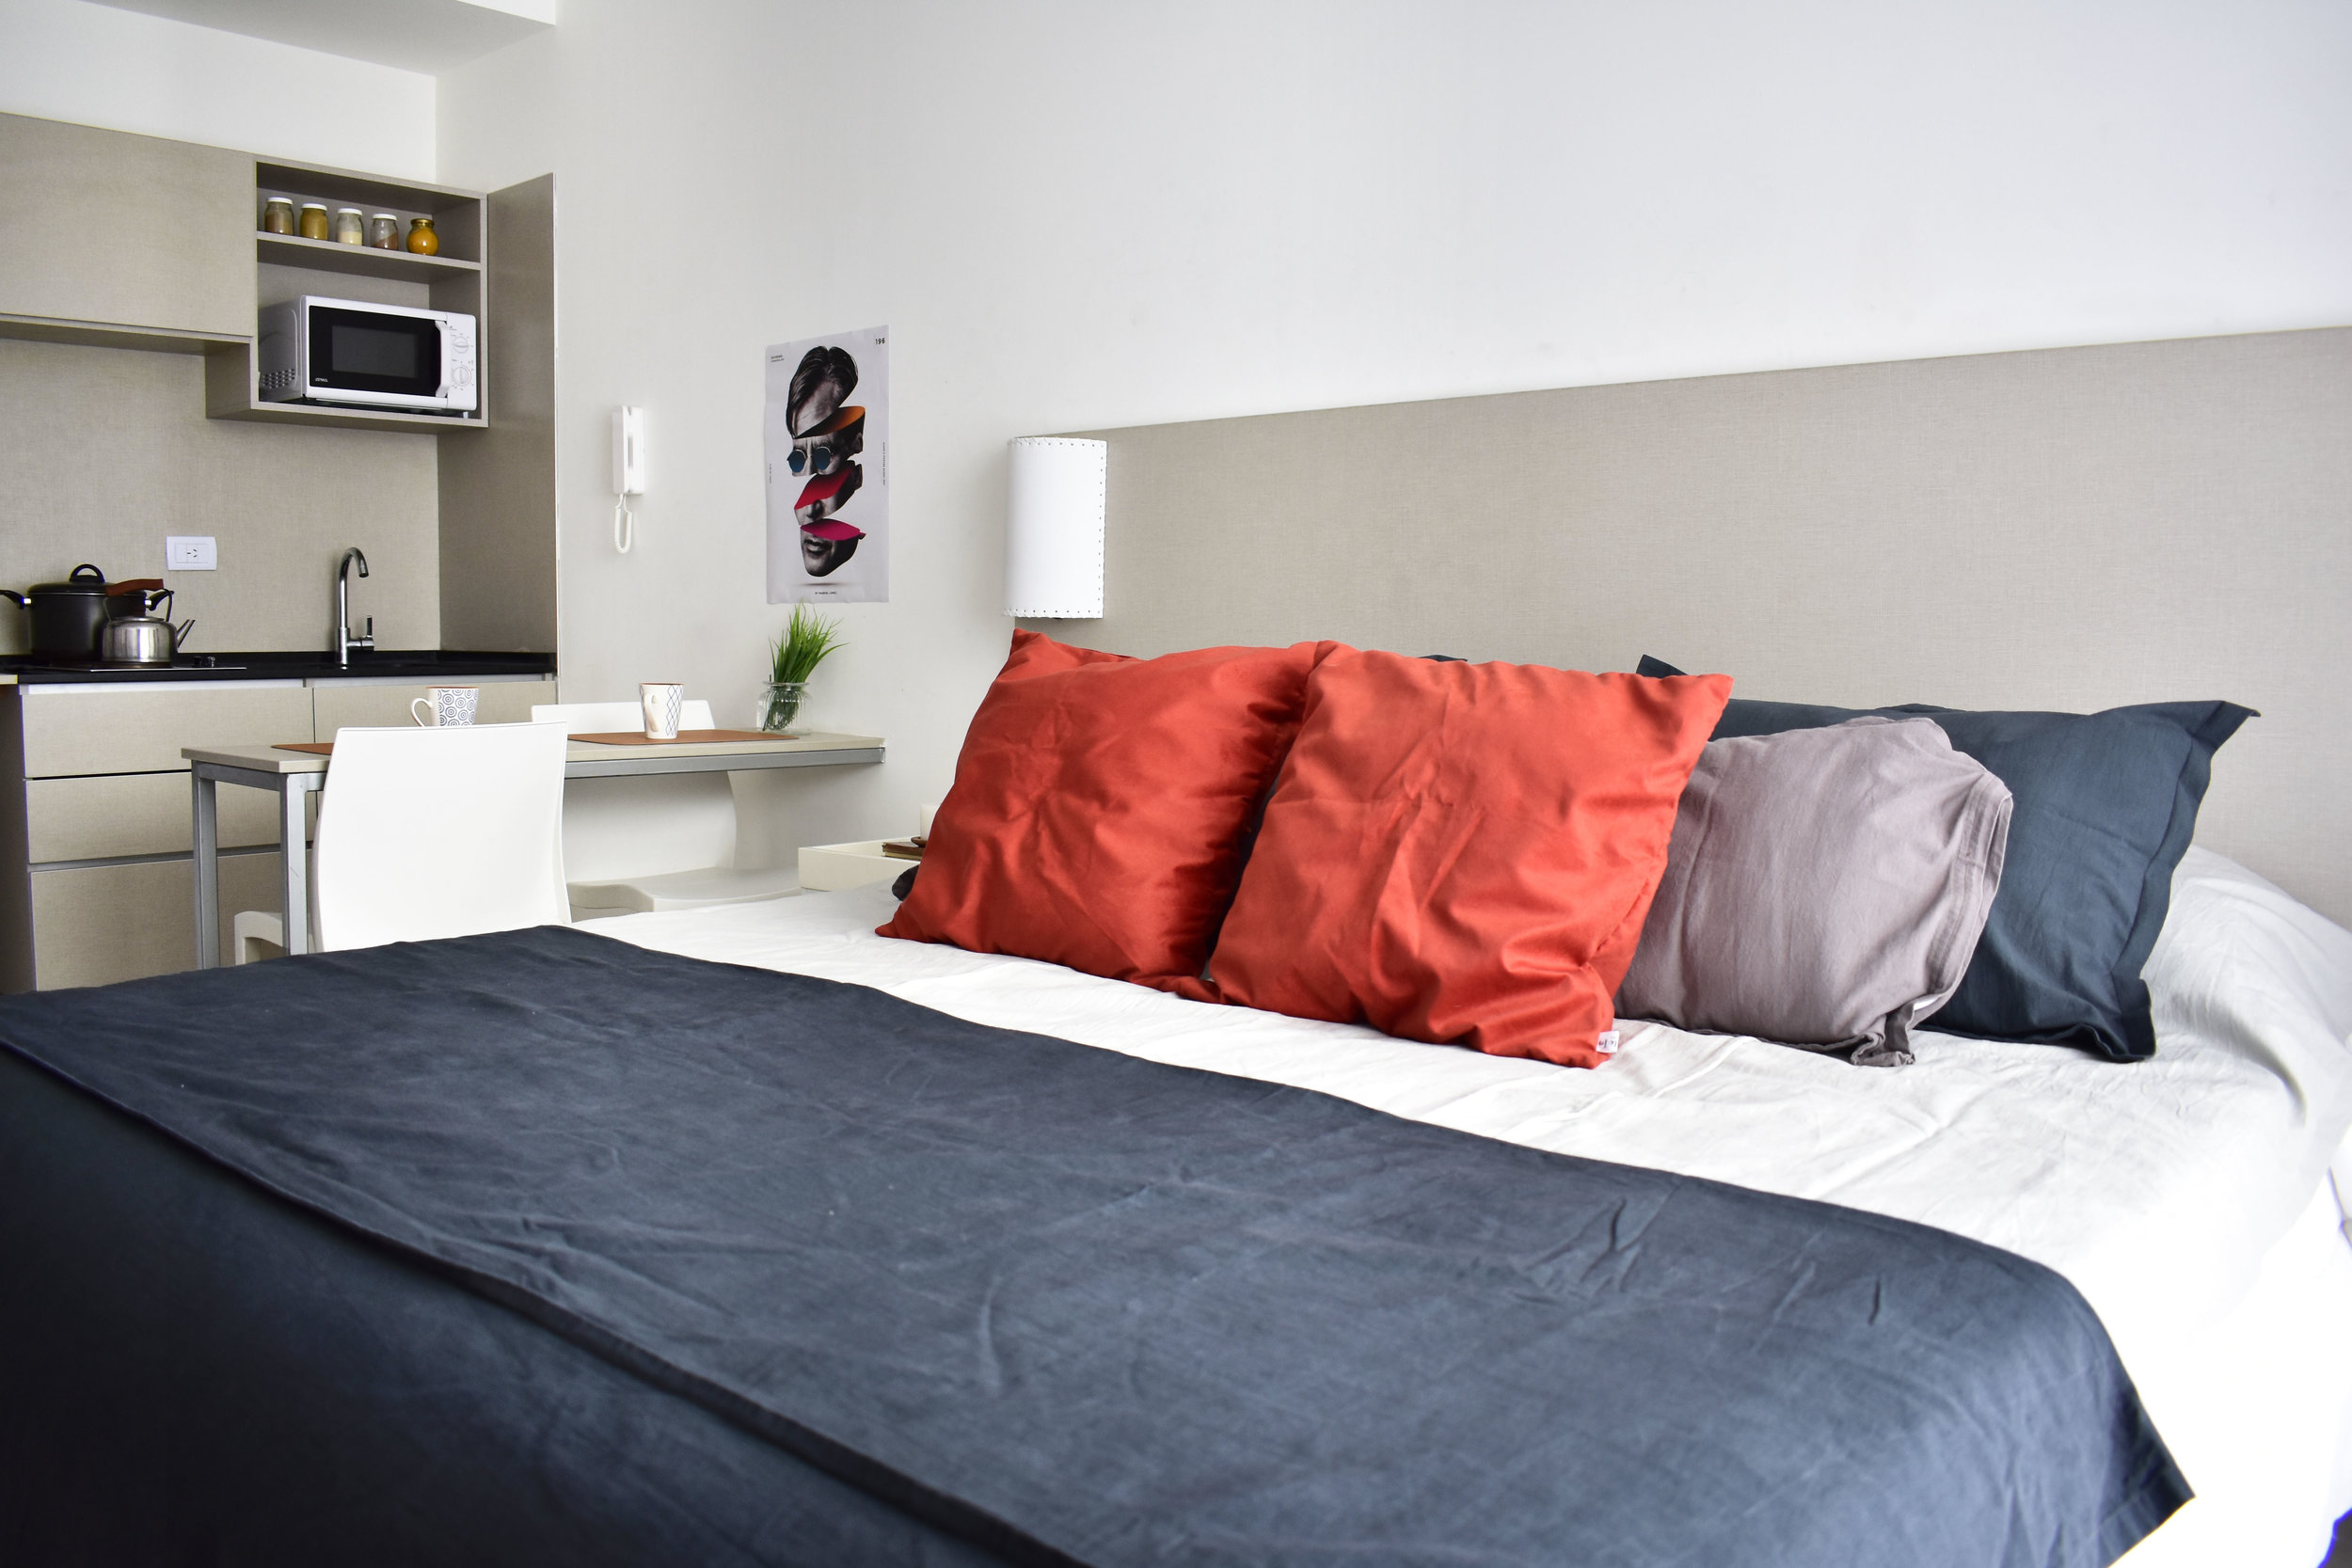 Your space - Your very own place, fully equipped and furnished. Focus on living while we take care of everything else.